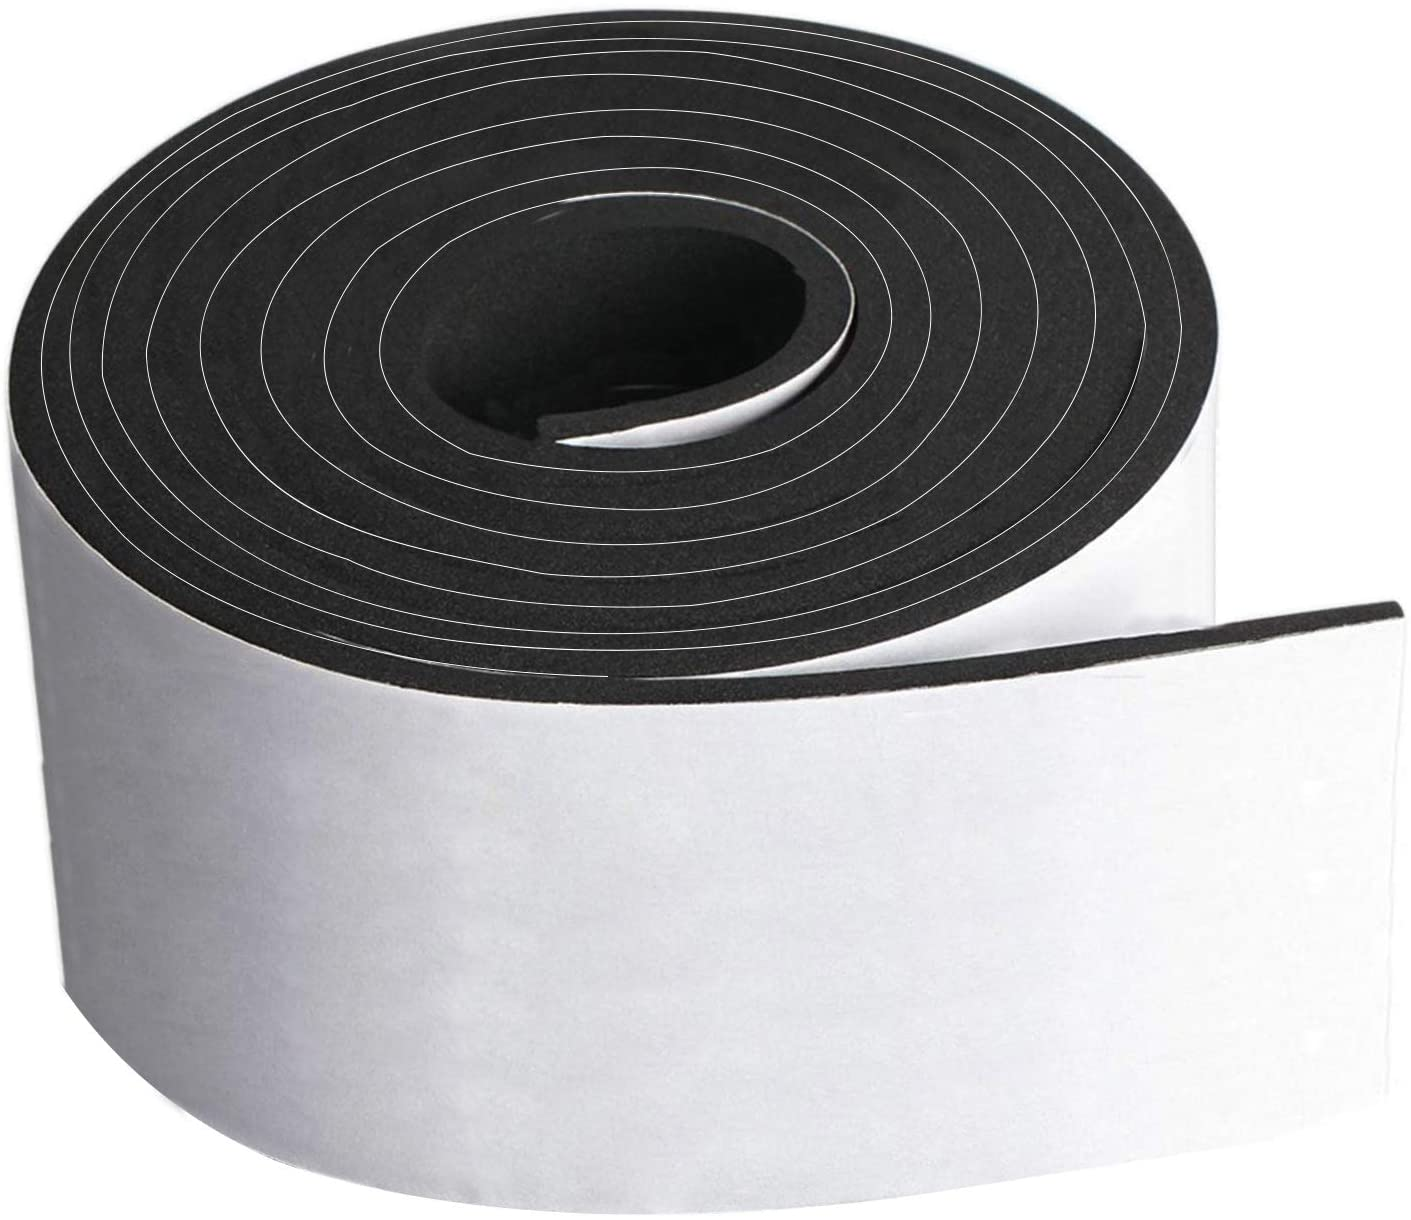 Neoprene Foam Strip Roll by Dualplex, 4 Wide x10 Long 1/8 Thick, Weather Seal High Density Stripping with Adhesive Backing – Weather Strip Roll Insulation Foam Strips